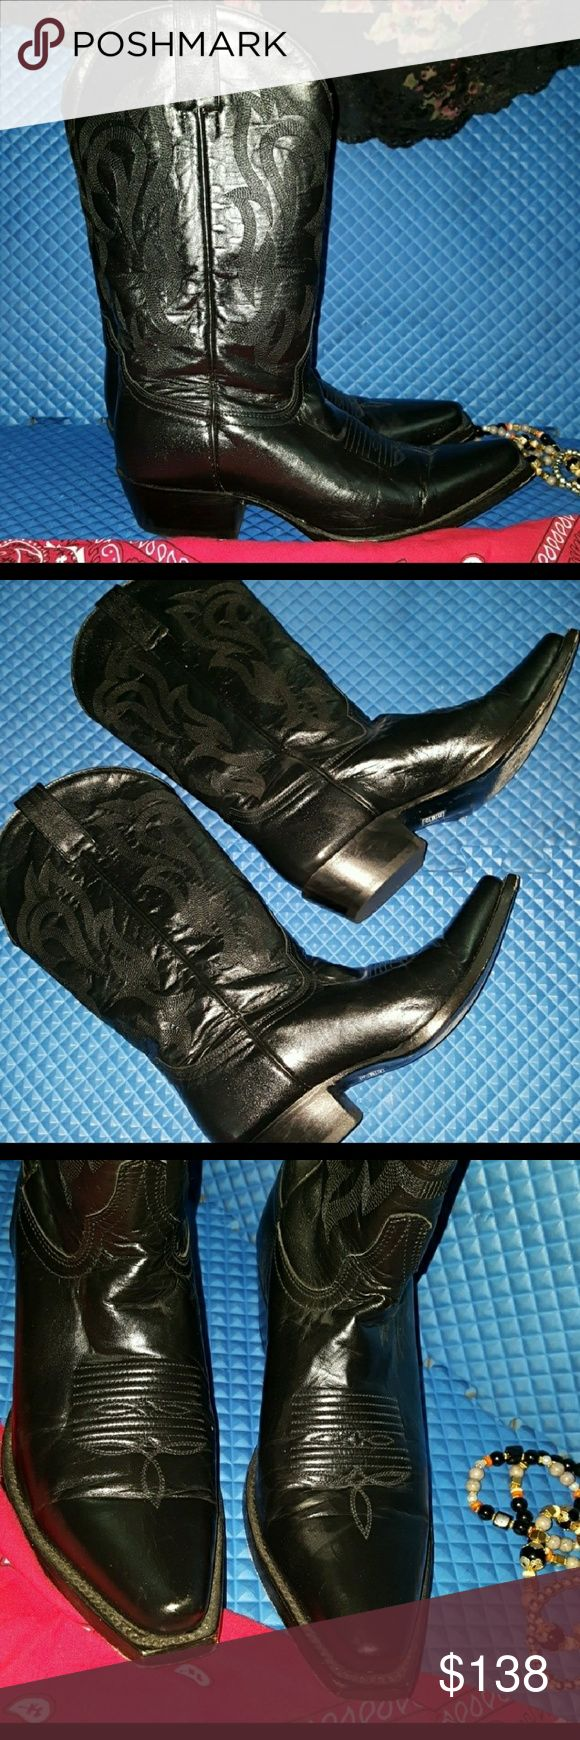 Ladies Black Leather Cowboy Boots size 7 Ladies leather boots Size 7 b Black color Very beautiful to go with a nice country style dress Gently used condition see pictures no major scuffs They run like a true 7 a little slender on calf. Beautiful embroidery design Real Leather, made in Mexico Paid over 250 for them and wore for 2 events  One a country style wedding and a western party Shoes Ankle Boots & Booties